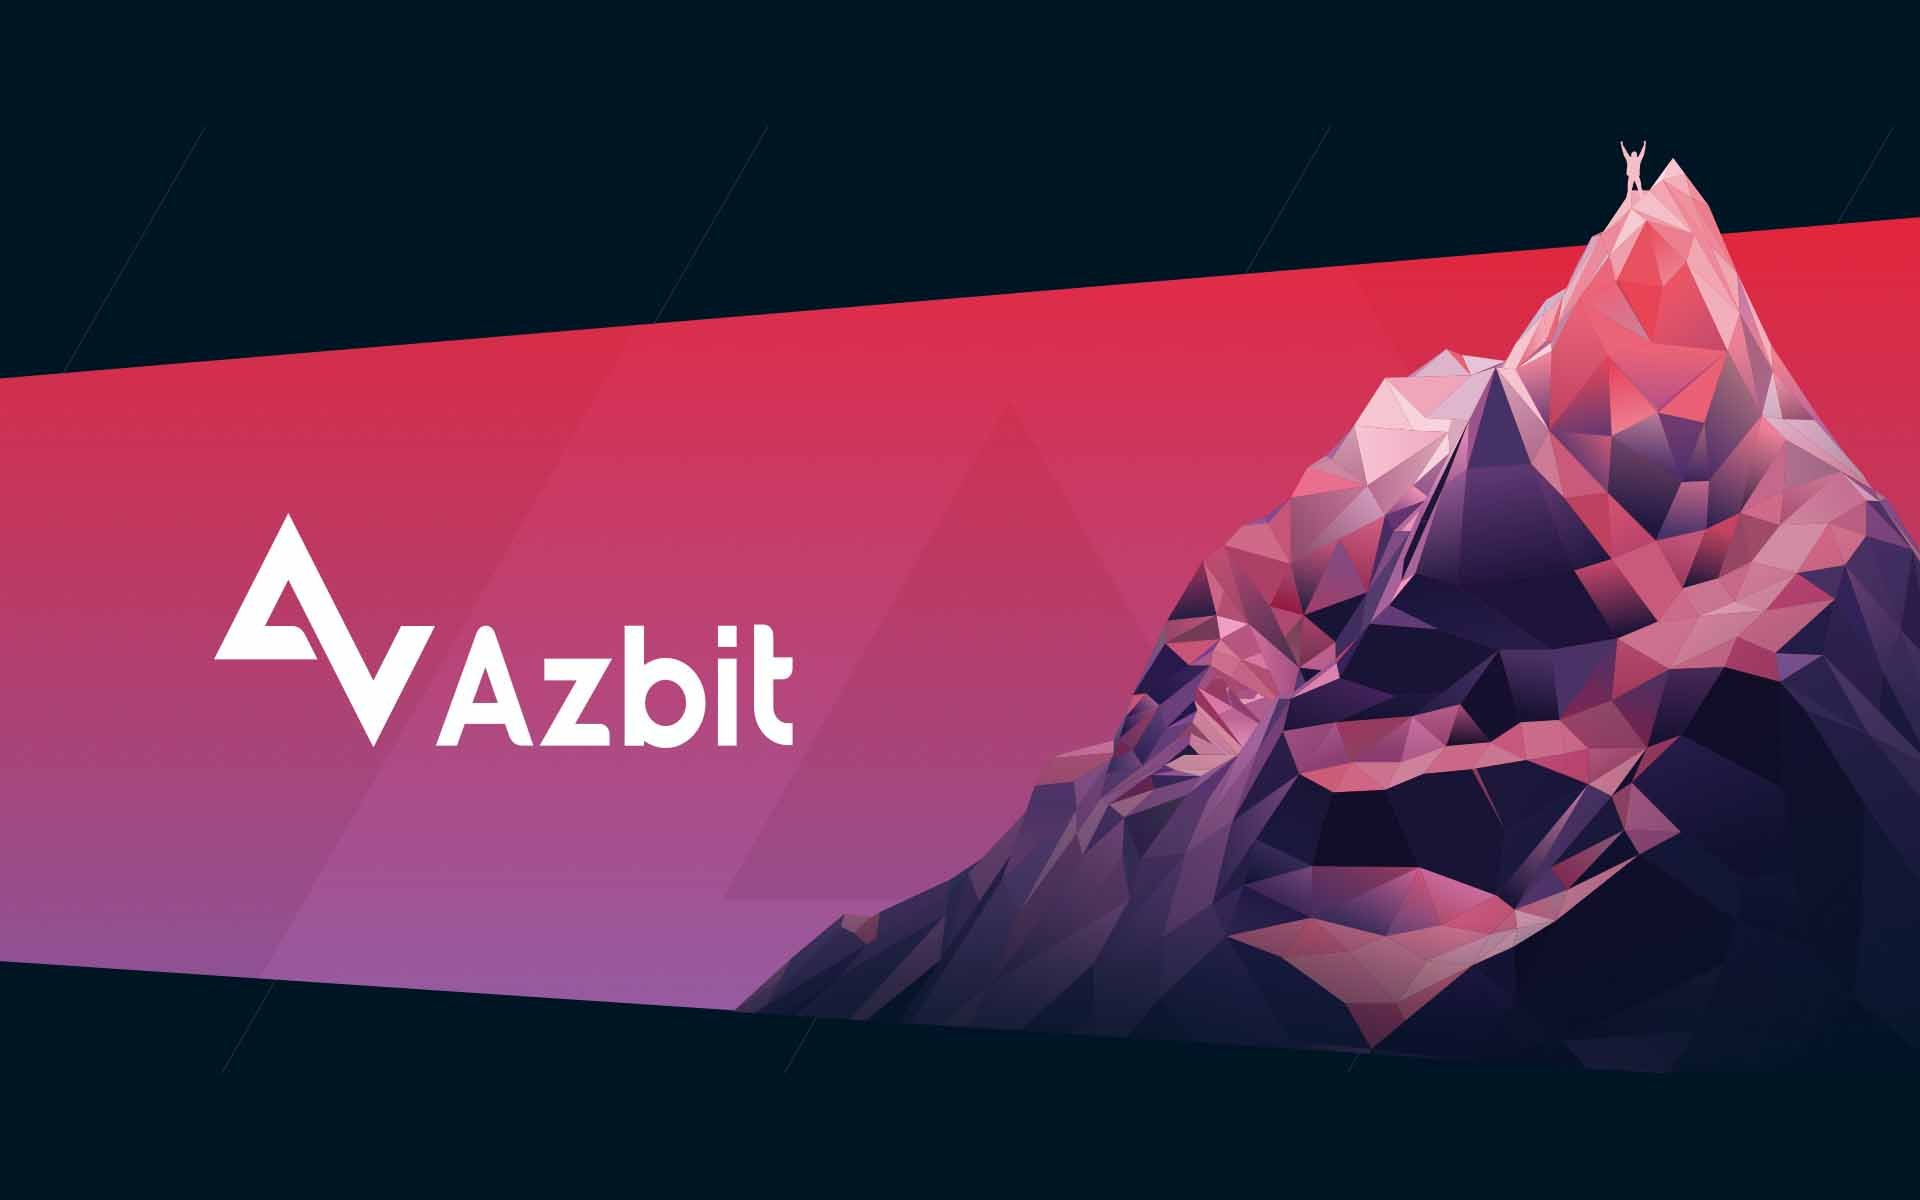 ICO Azbit Announces Public Sale of AZS Security Tokens